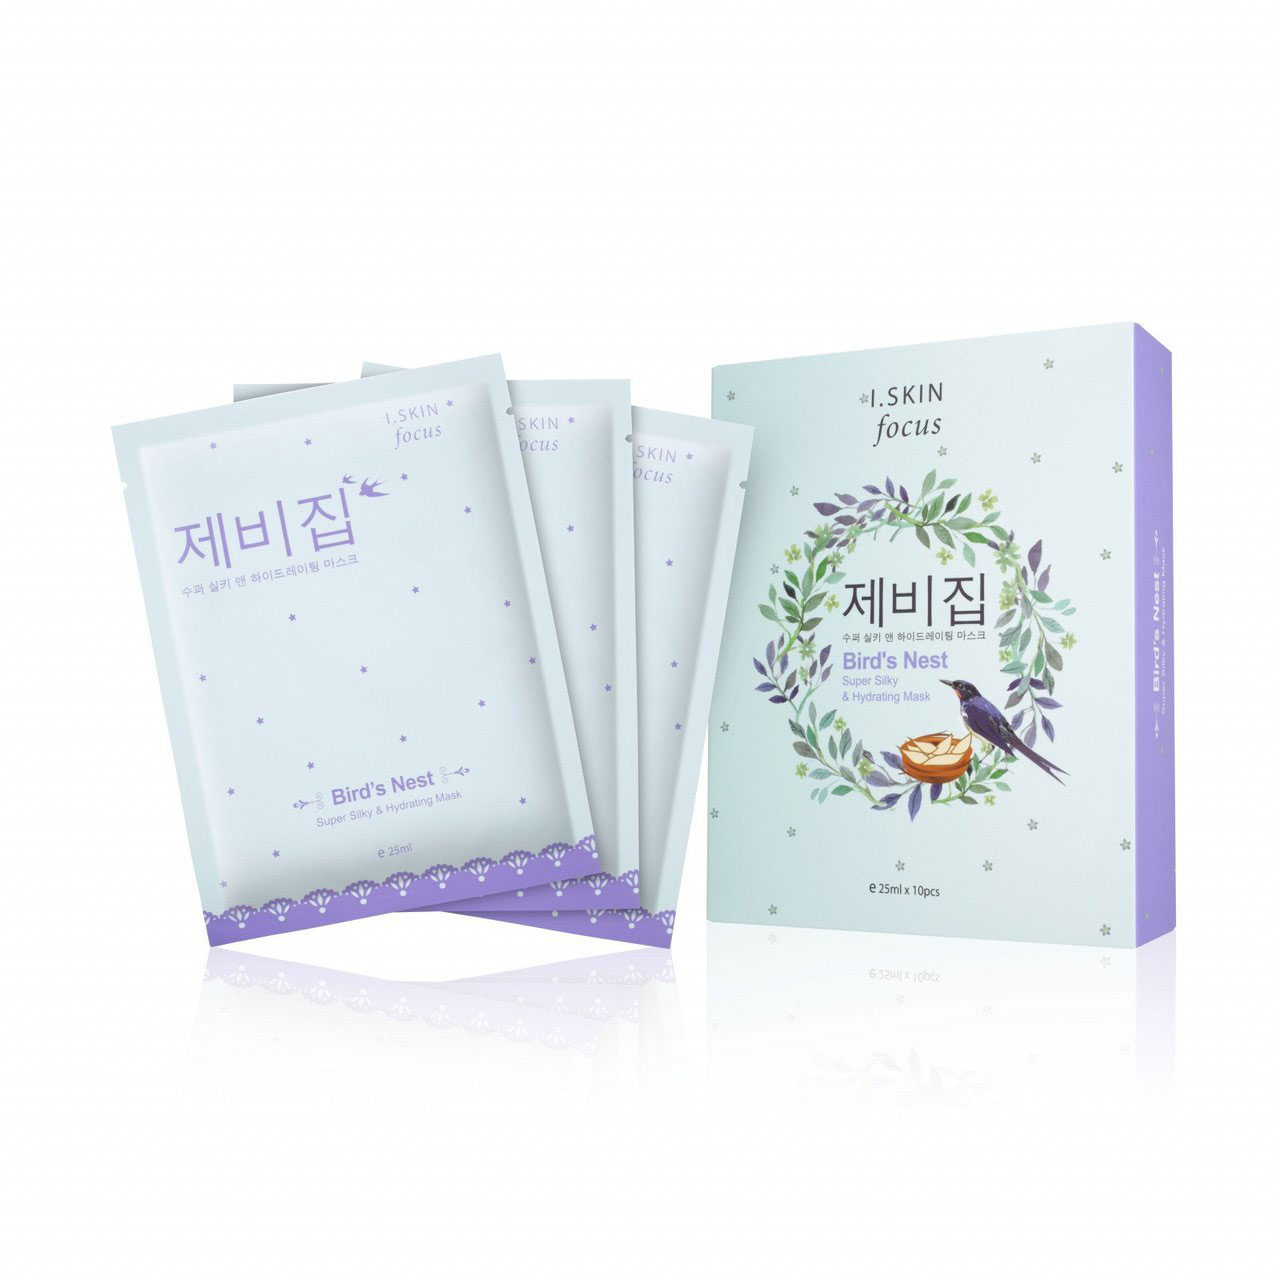 I. SKIN Focus Bird's Nest Super Silky & Hydrating Mask